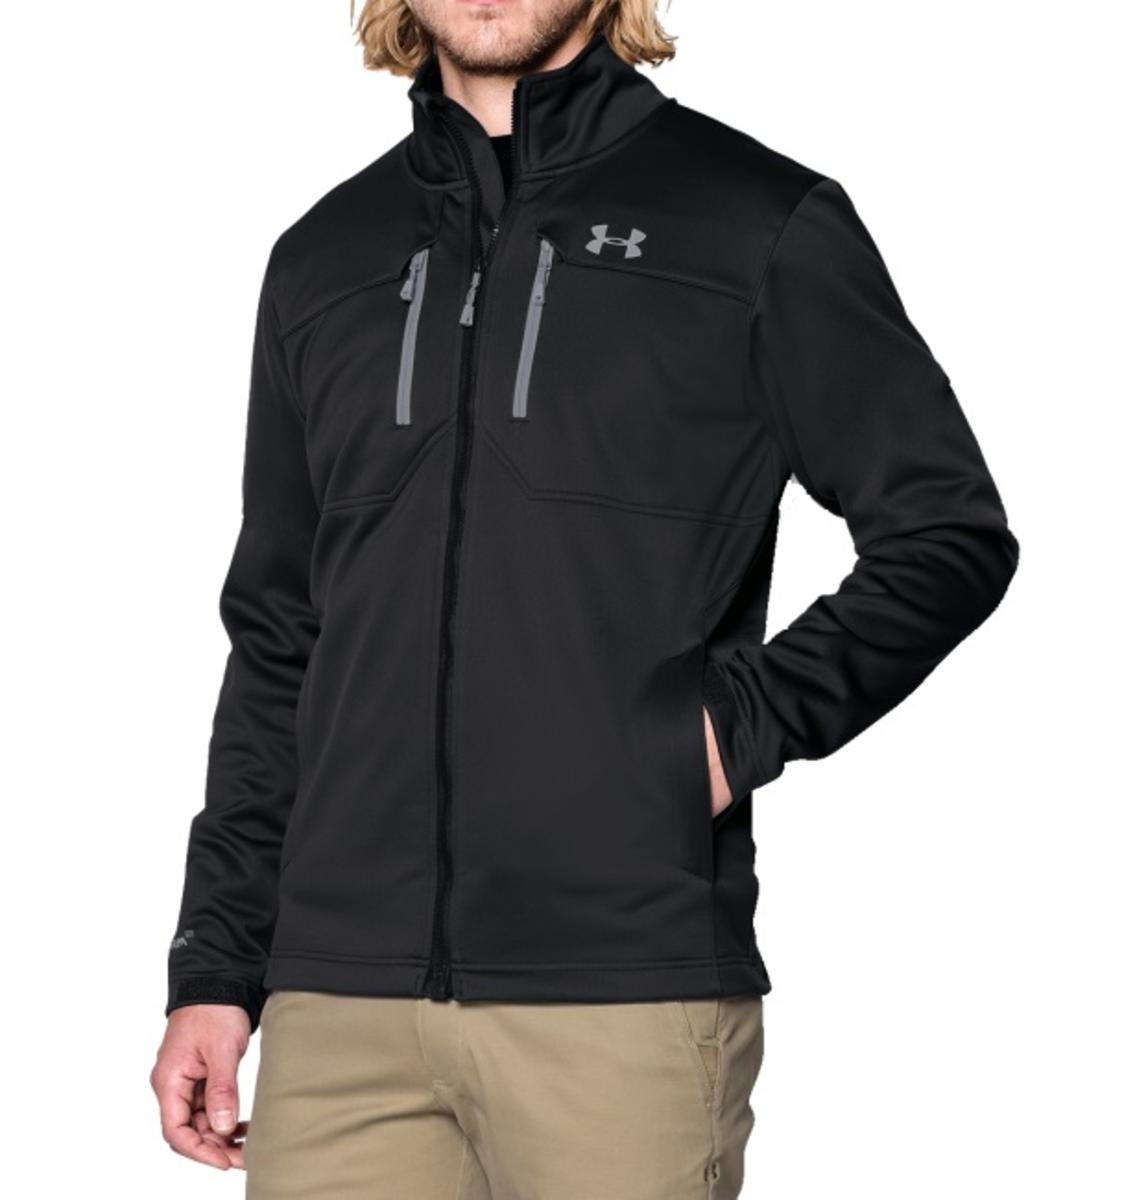 462aca83636a Under Armour Men's UA Storm ColdGear Infrared Softershell Jacket ...